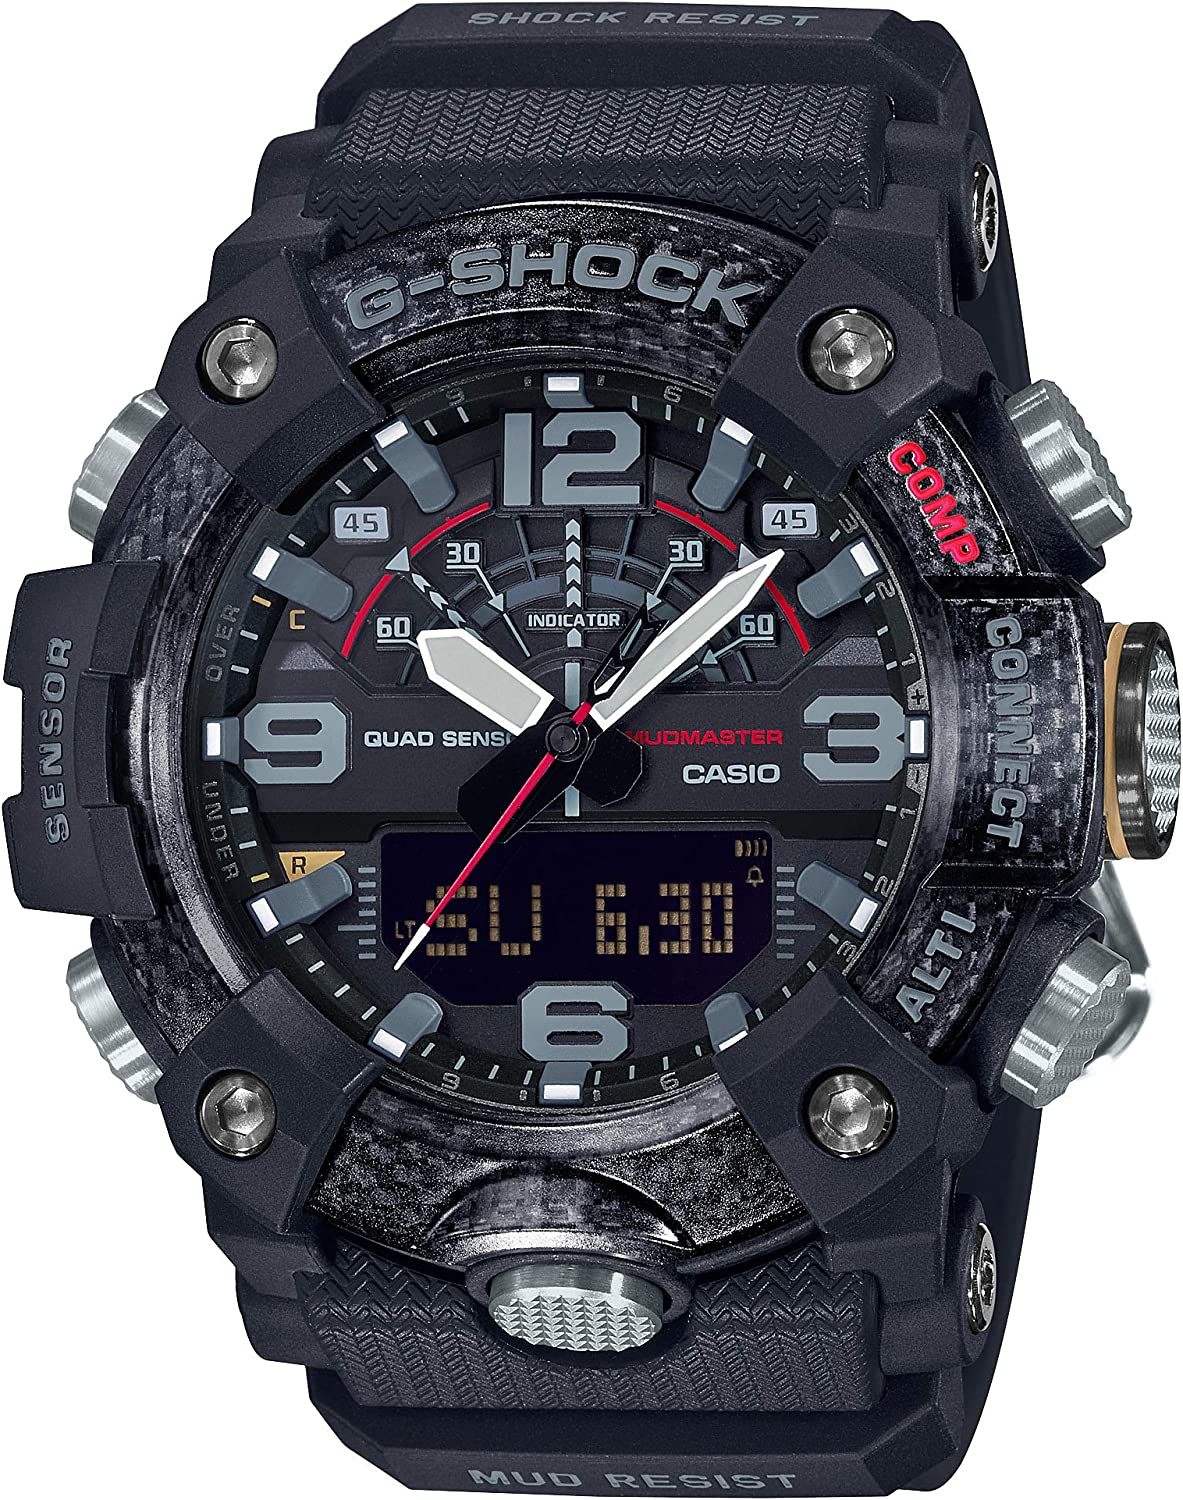 Casio G-SHOCK Mudmaster GG-B100-1AJF Bluetooth Mens Watch Japan Domestic Genuine Products